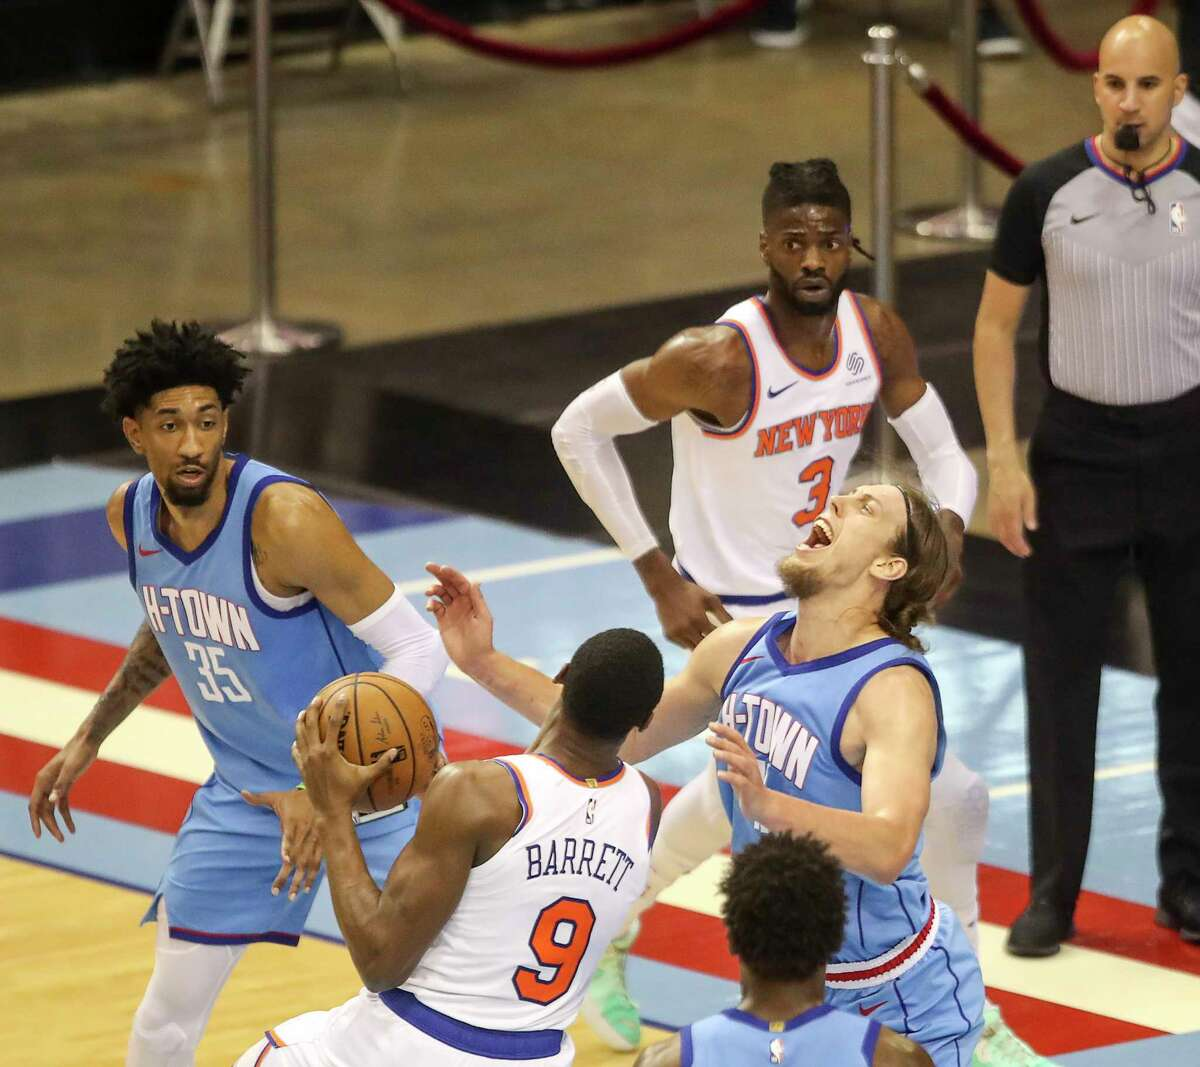 Houston Rockets forward Kelly Olynyk (41) and New York Knicks' RJ Barrett (9) each get a foul during the third quarter of an NBA game Sunday, May 2, 2021, at the Toyota Center in Houston.